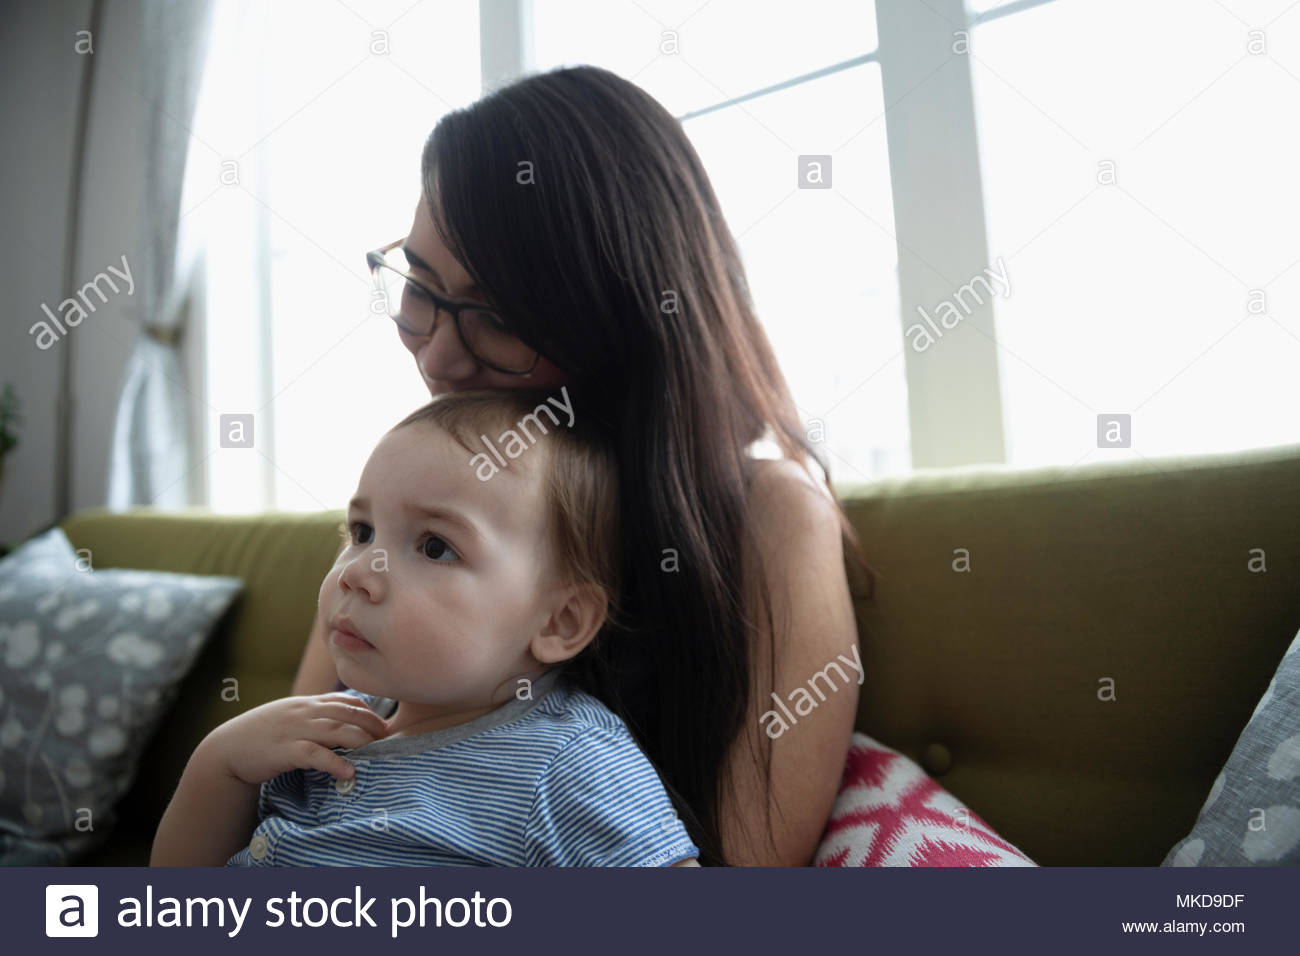 Affectionate, tender mother holding baby son on sofa - Stock Image